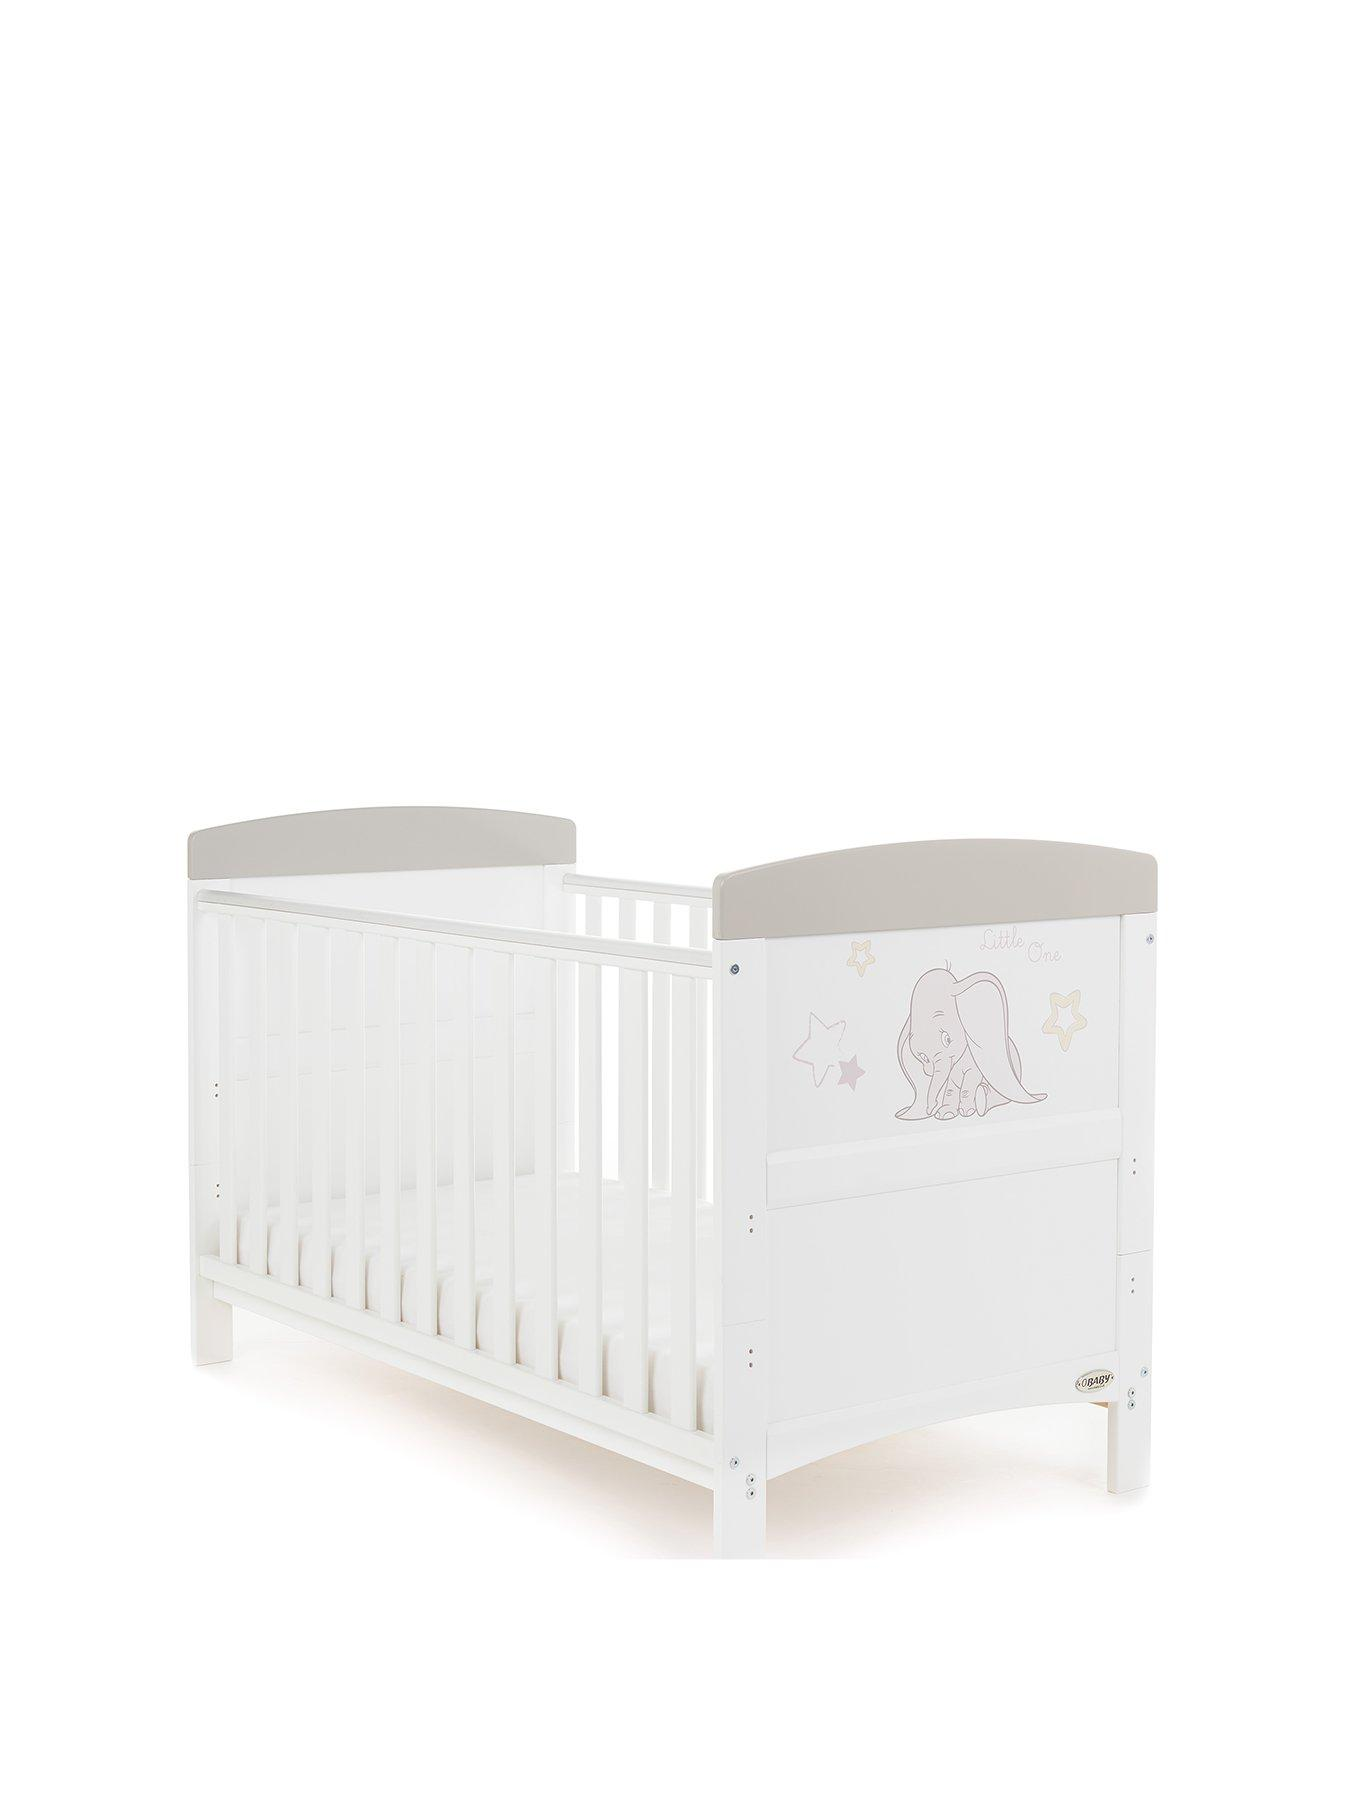 COCO MATTRESS NEW WHITE-BLUE 2in1 COT-BED 120x60 WITH 3-PIECE BEDDING no 7